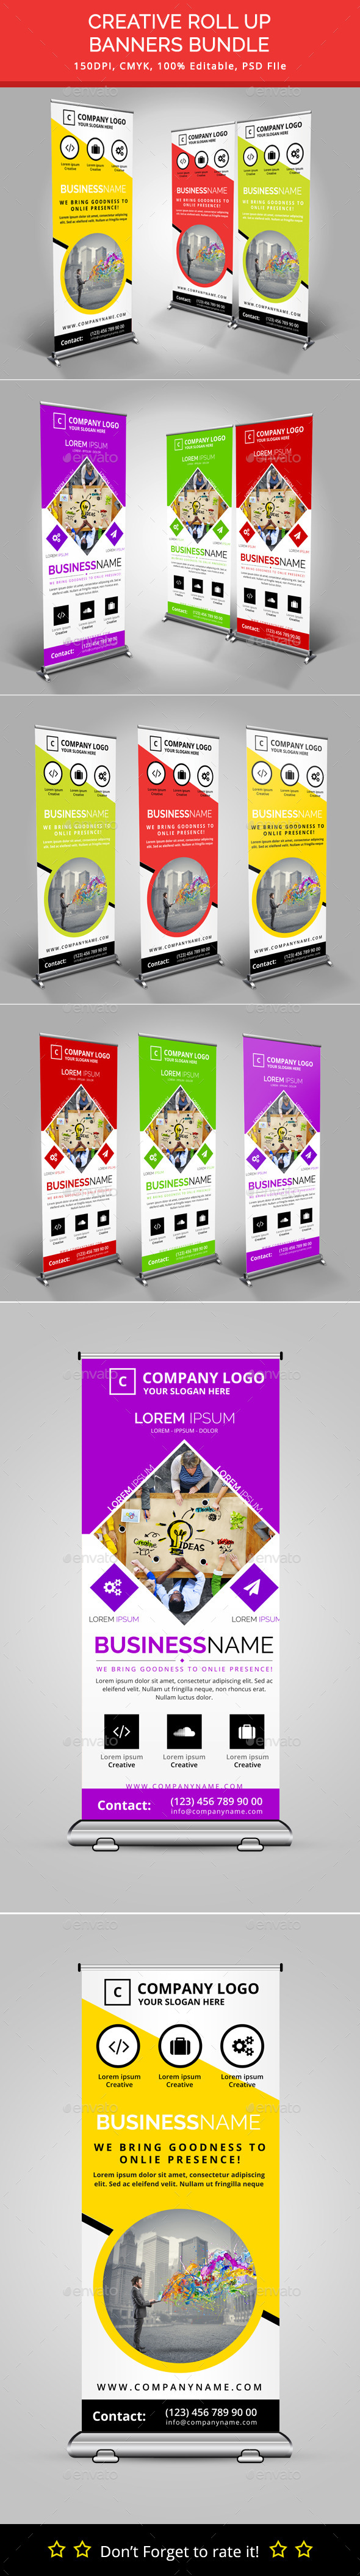 GraphicRiver Bundle of 2 Rollup Banners 11335594